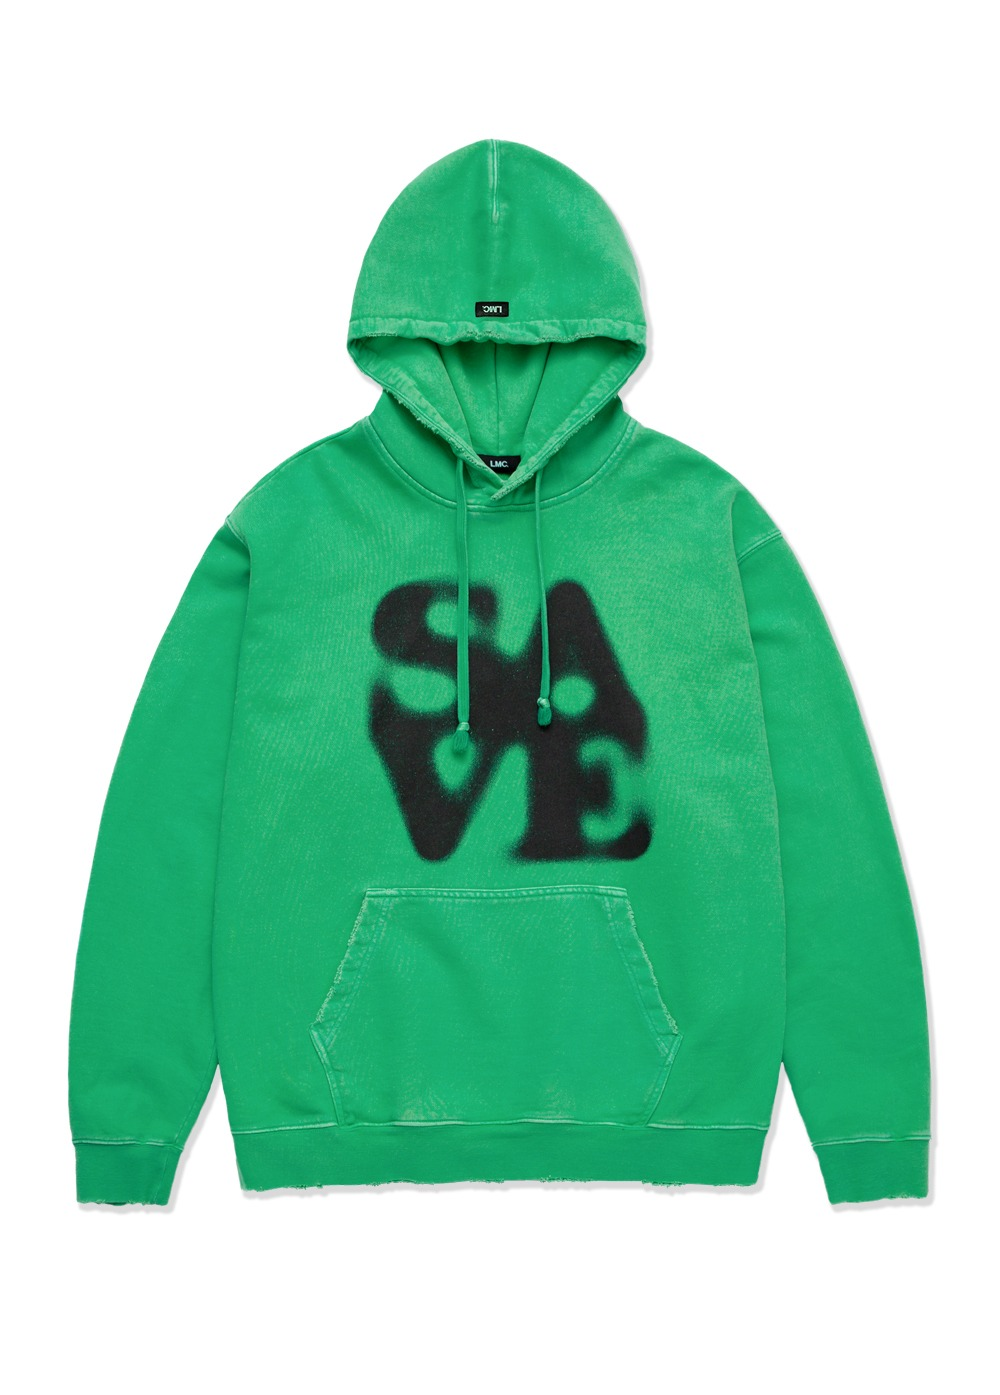 LMC DISTRESSED EDGE SAVE GLOBE HOODIE green